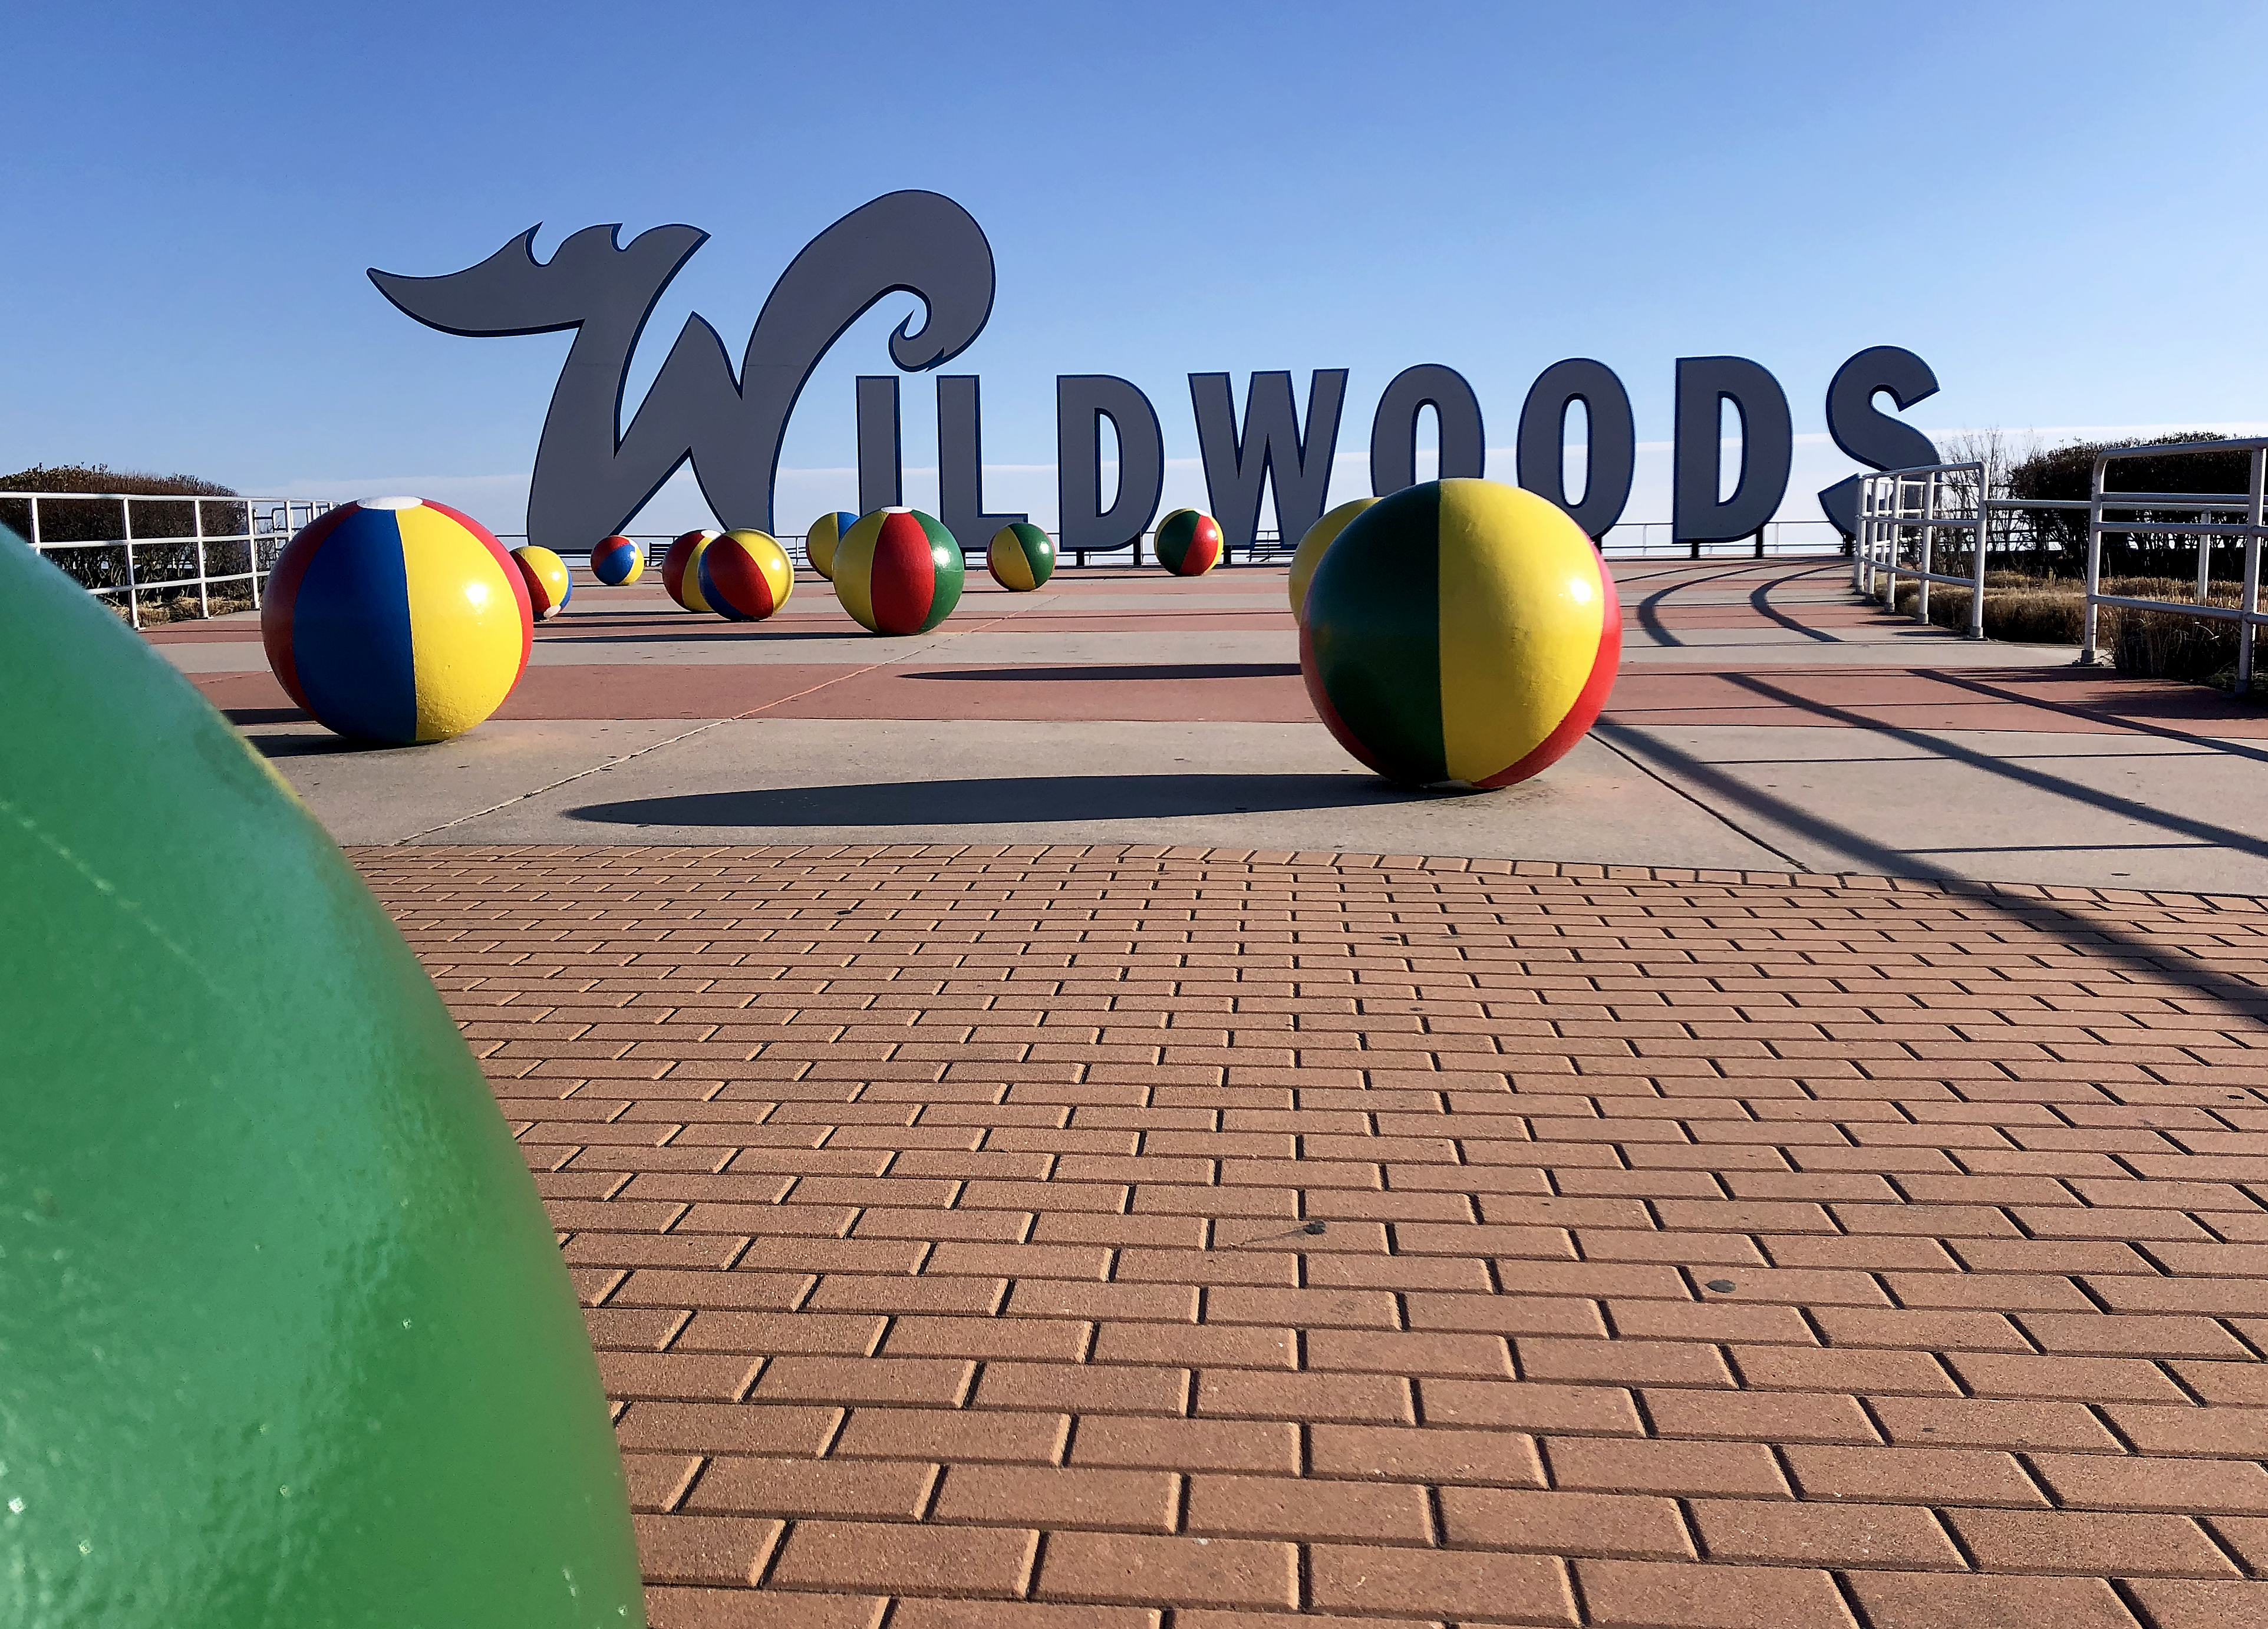 We shouldn't have to pay for Trump's Wildwood visit so we're keeping tabs, mayor says